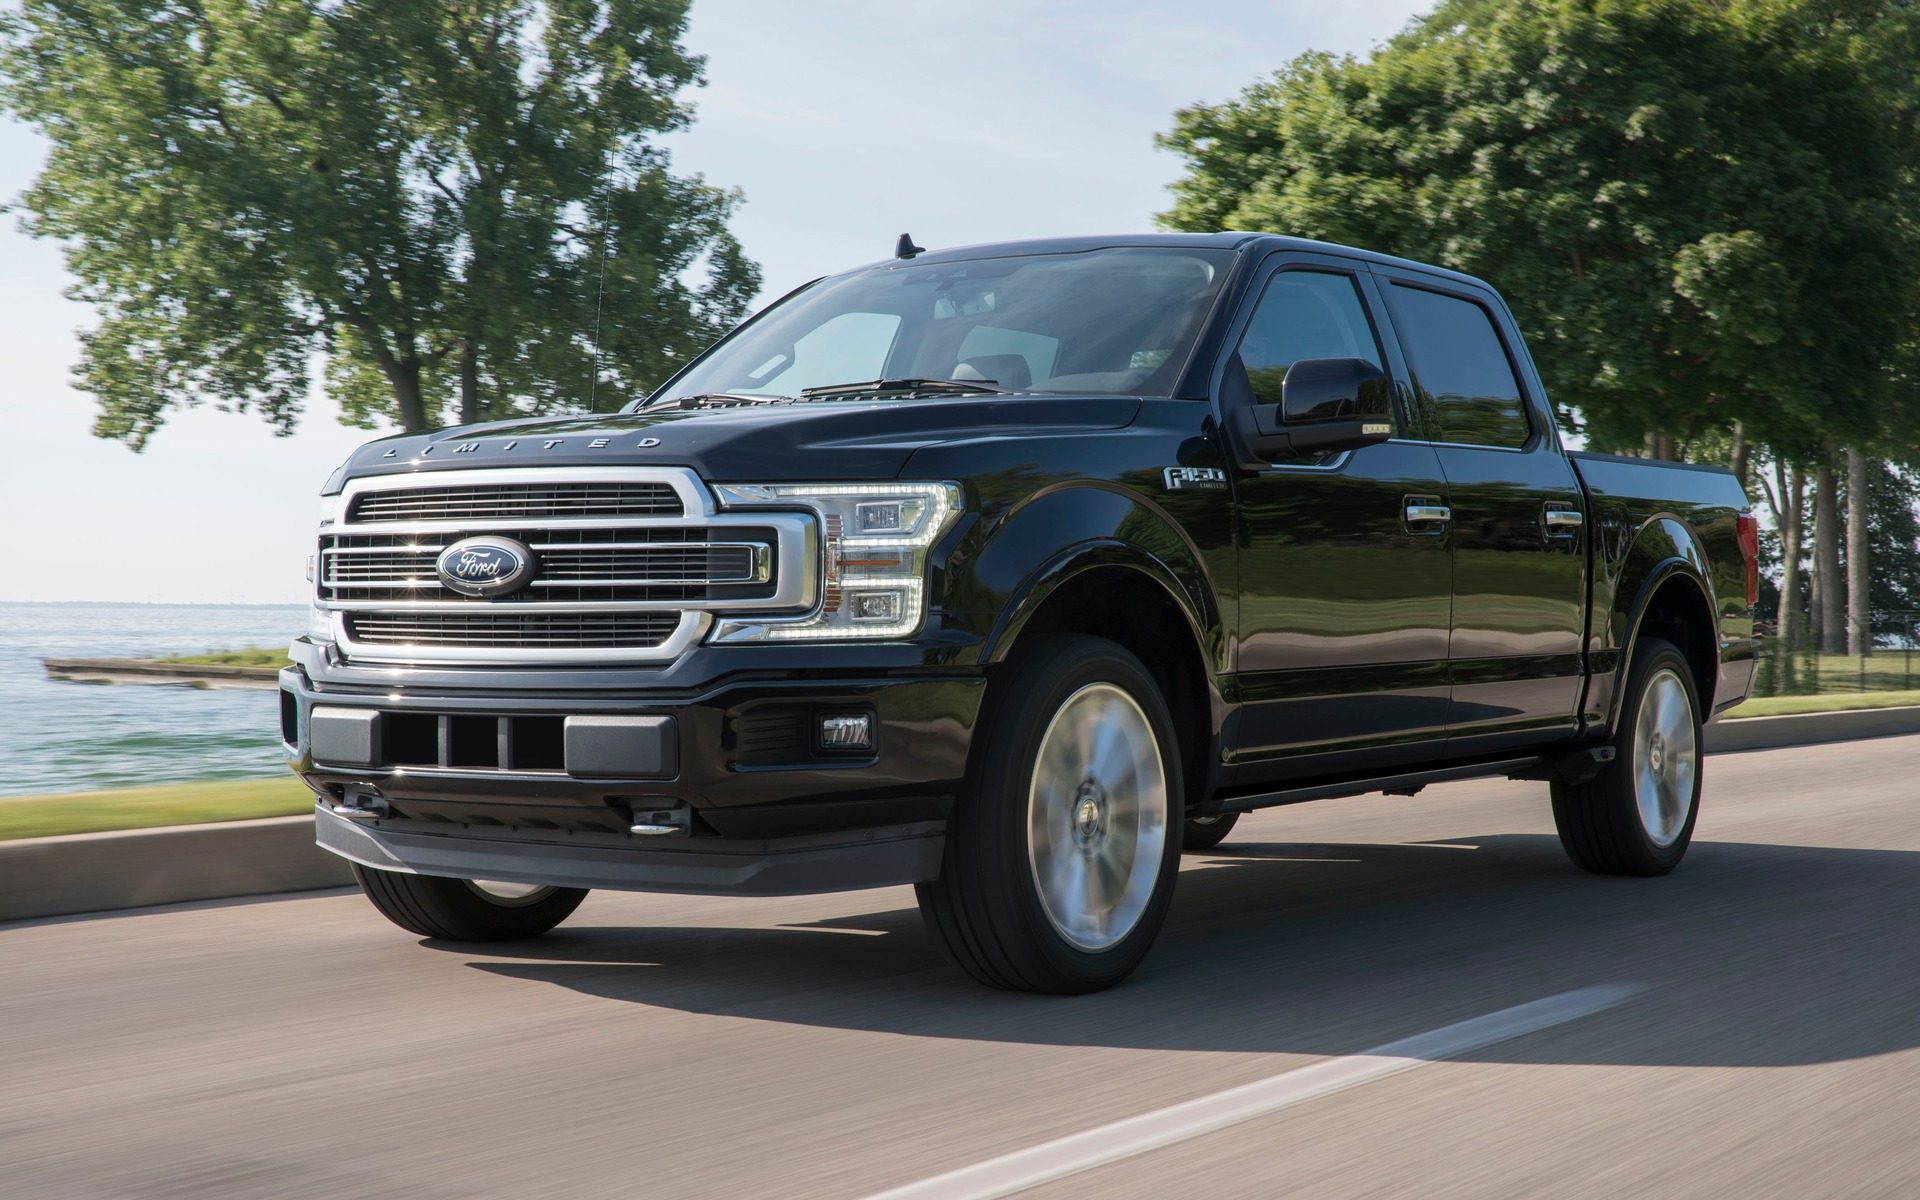 le moteur du raptor atterrit dans le ford f 150 limited 2019 guide auto. Black Bedroom Furniture Sets. Home Design Ideas